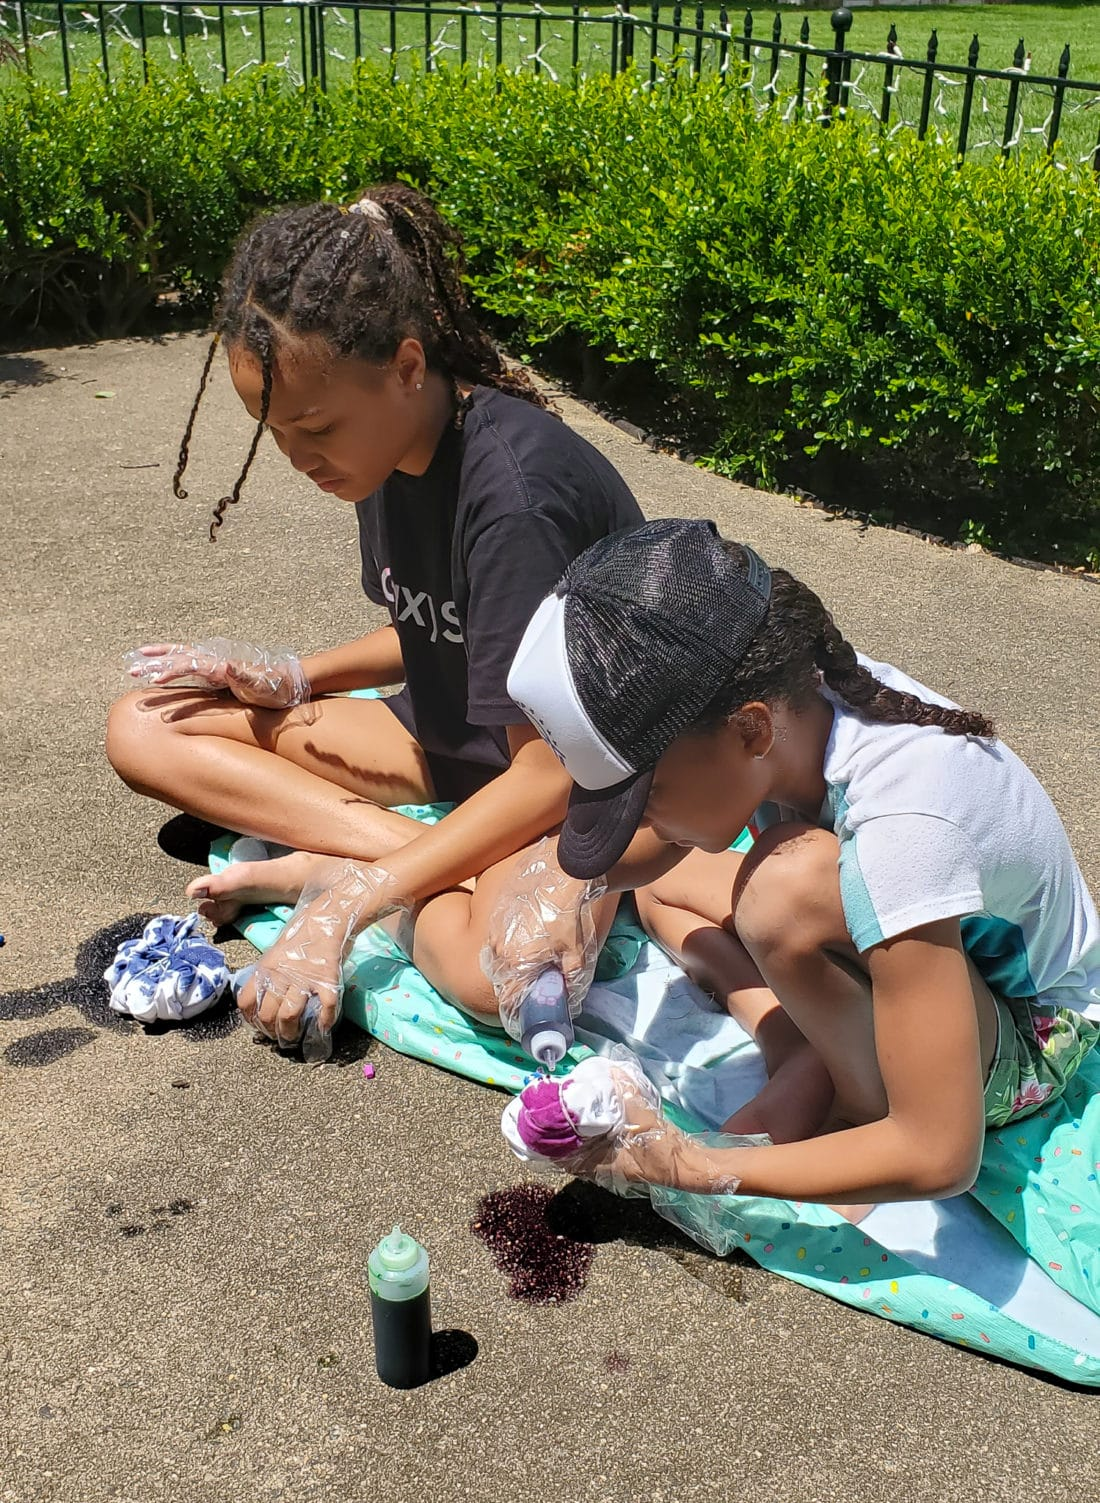 Camper Warner Bros. Tie-Dye Camper Shirts Girls. Join us as we adventure through 8 weeks of Virtual Camp Warner Bros. Each week will feature a new fun family friendly activity and a Warner Bros. Show or Movie. This week featured a Camper Shirt Tie-Dye activity.